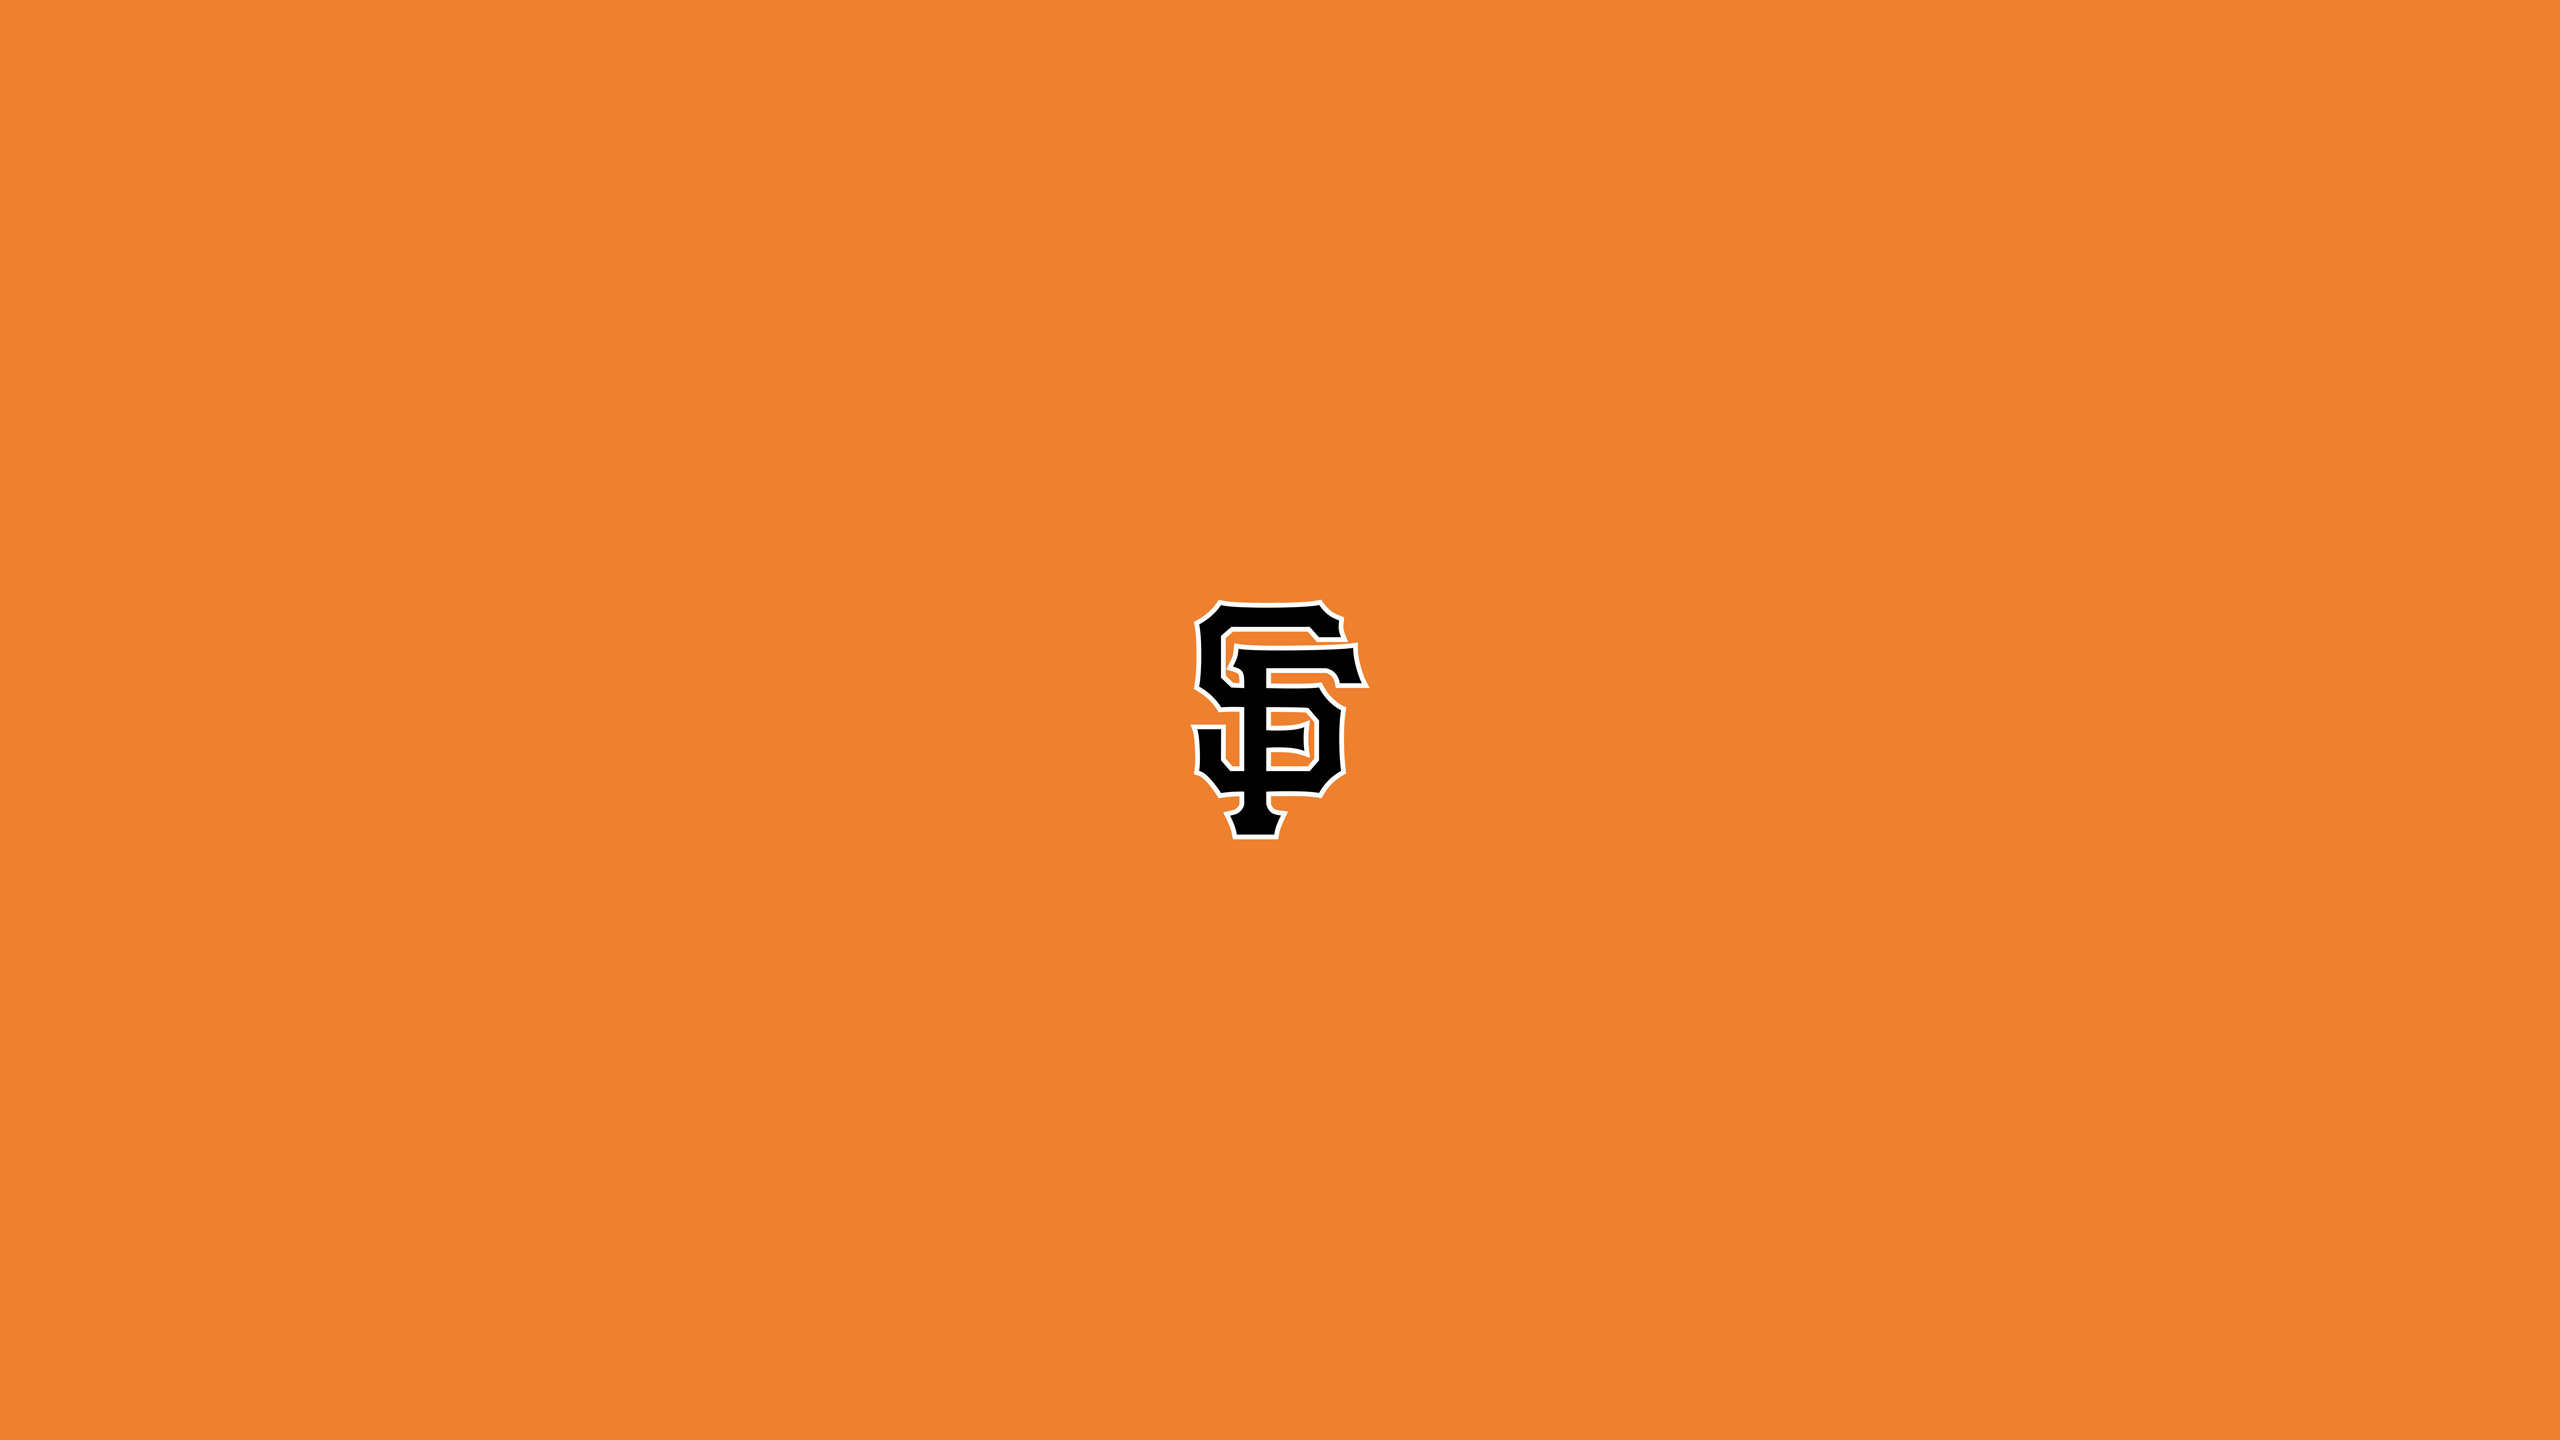 San-Francisco-Giants-Logo-Wallpapers